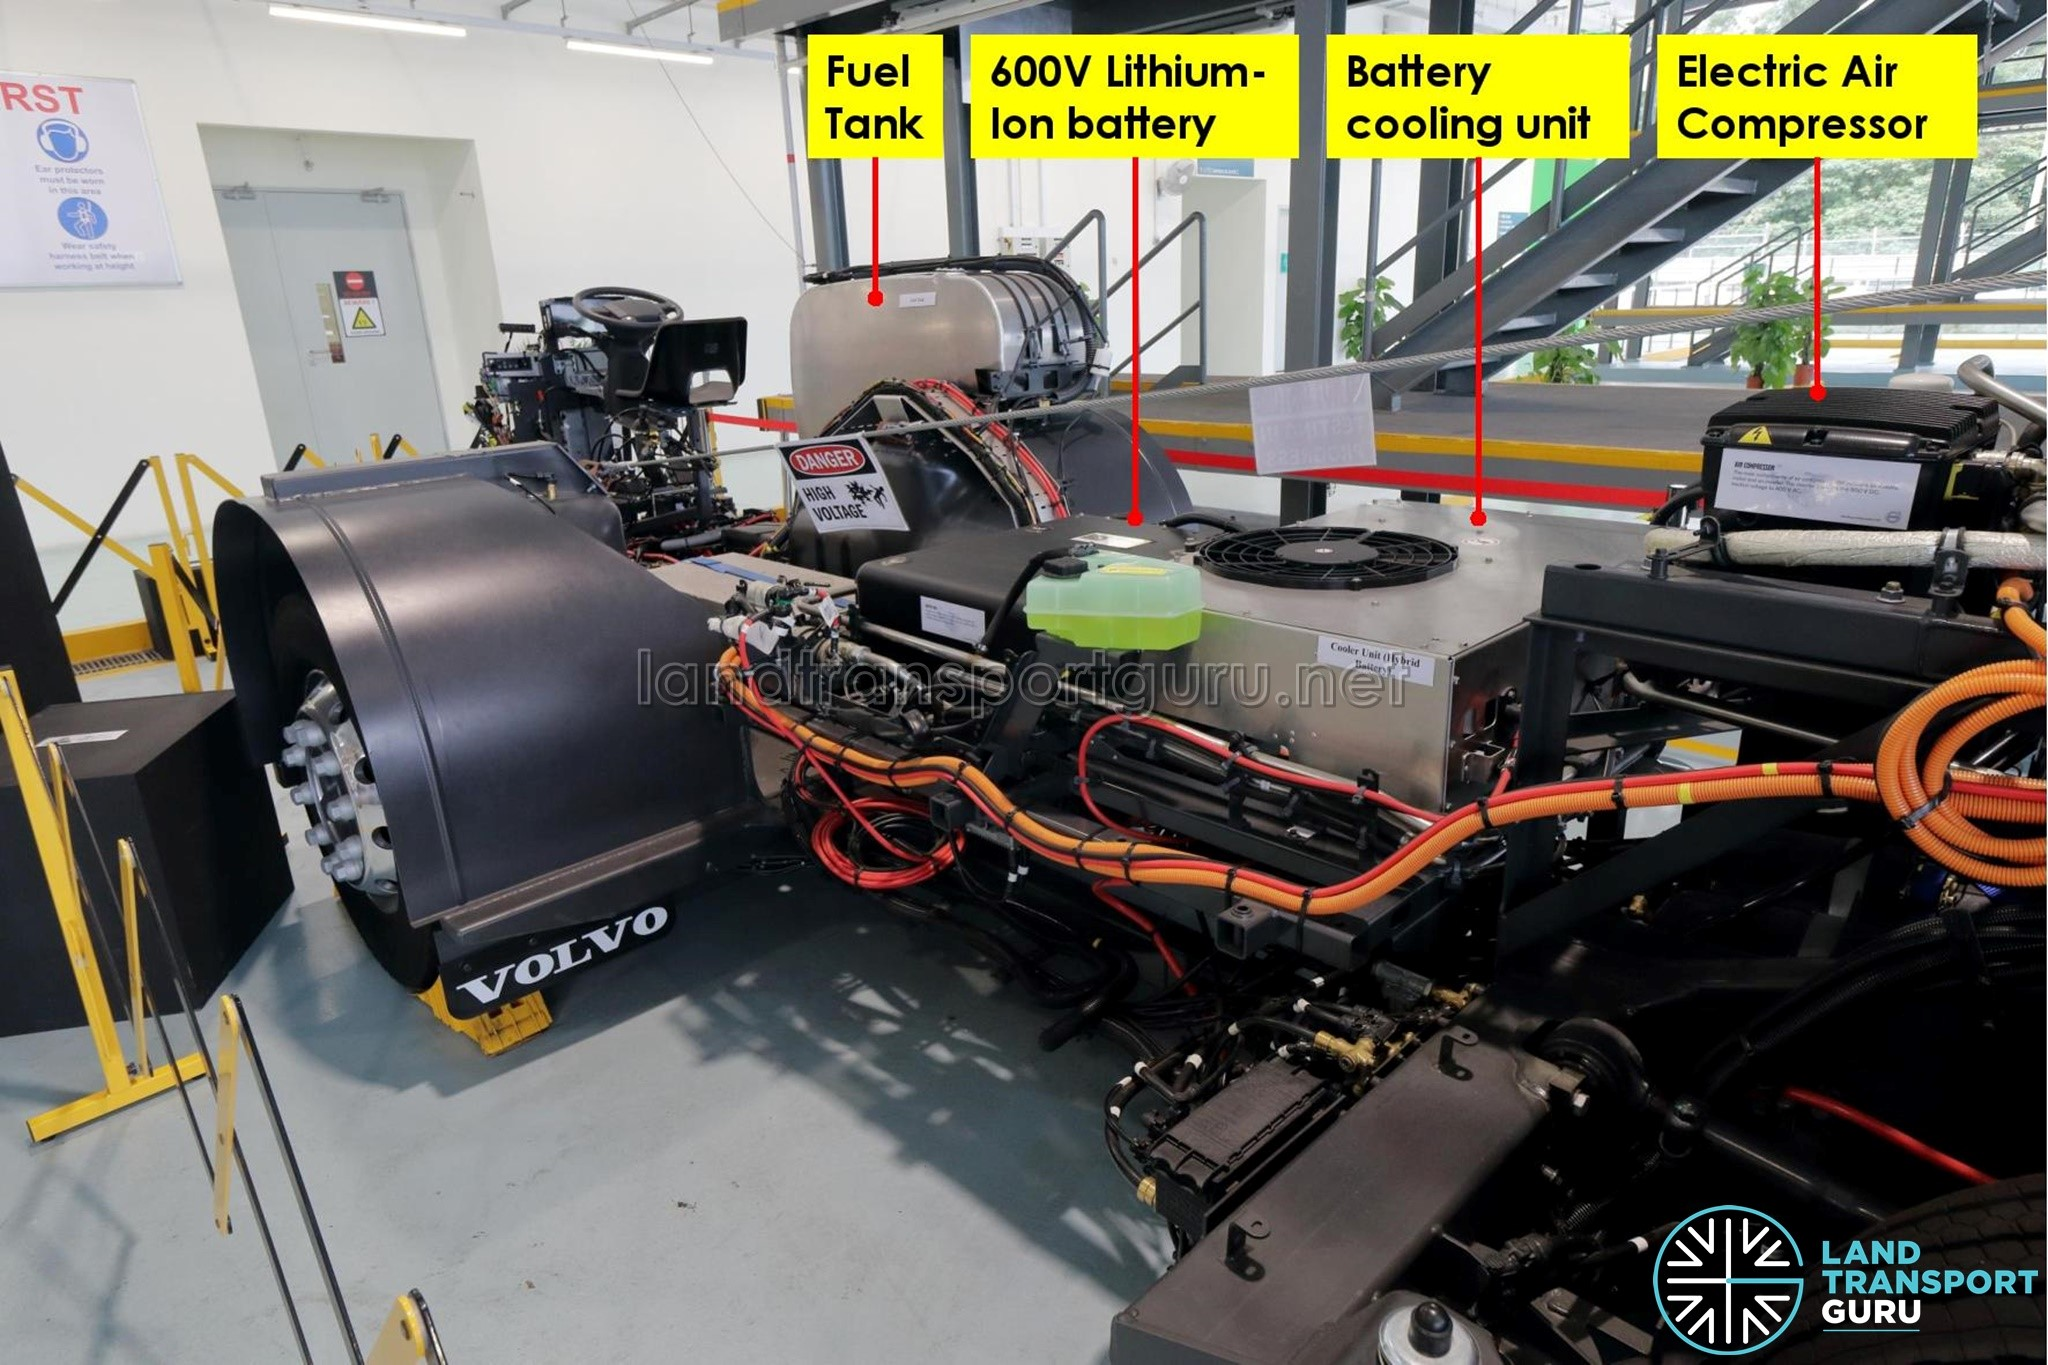 Volvo B5LH Chassis – Roof-mounted air compressor – Land